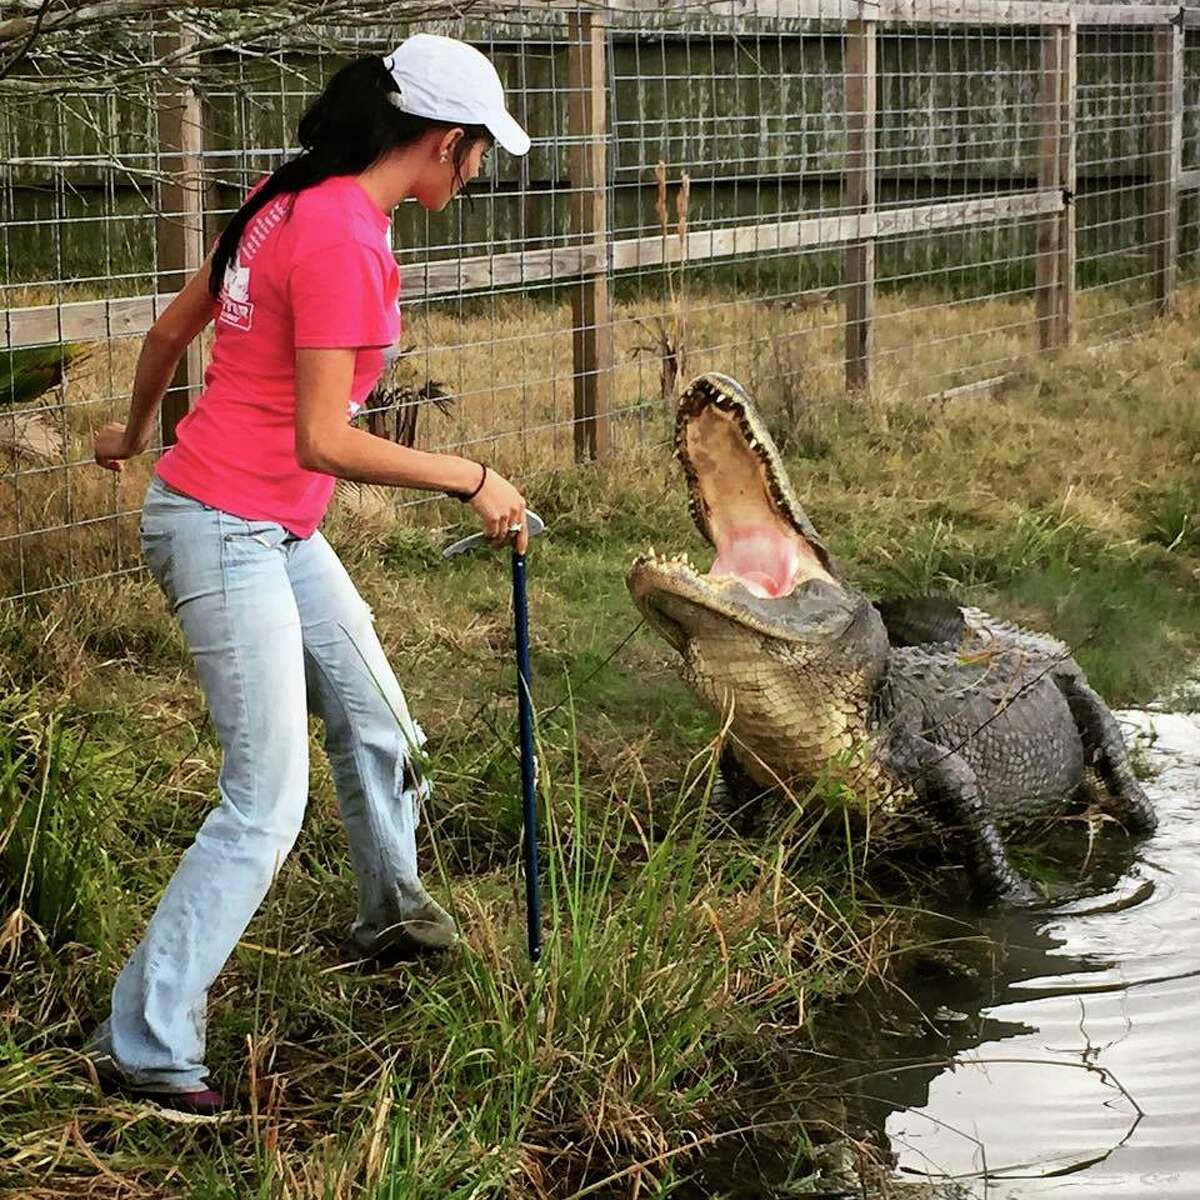 The wildlife tours also consist of feeding sessions, where visitors can watch trained staff feed the alligators and crocodiles in a stunning show that will send chills up your spine.